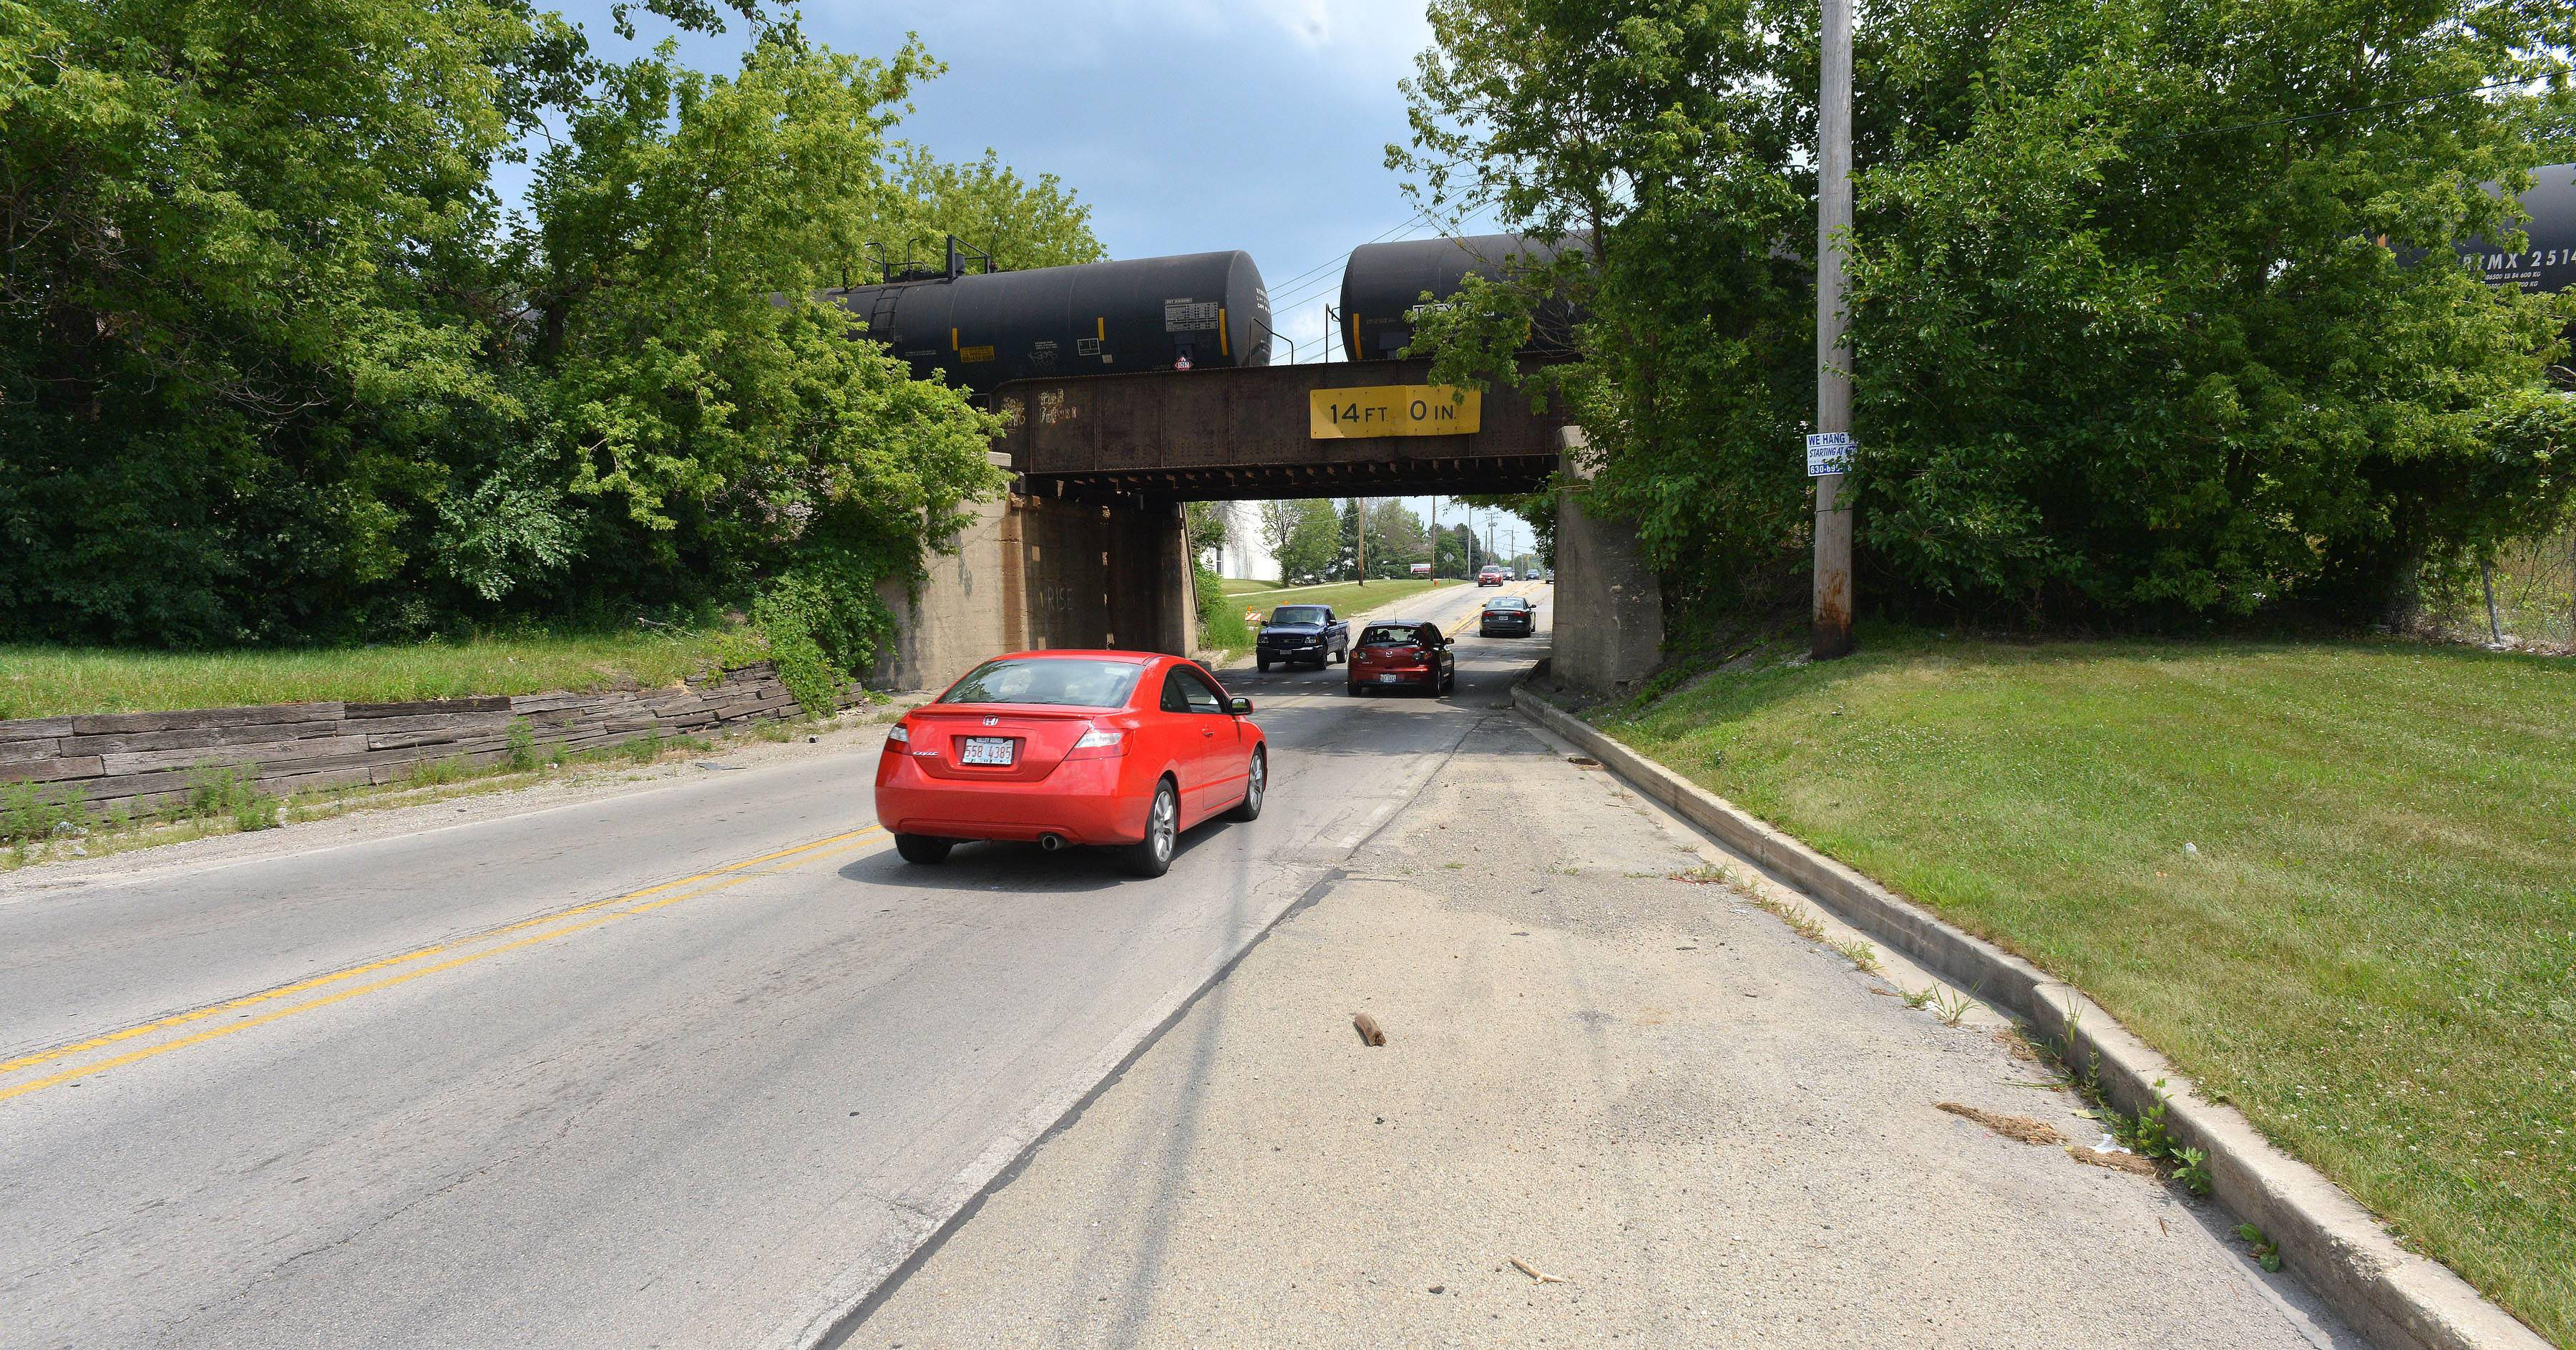 Naperville wants to widen the North Aurora Road underpass at the Canadian National Railway to be two lanes in each direction. The city is seeking $5 million in federal surface transportation funding for the project.